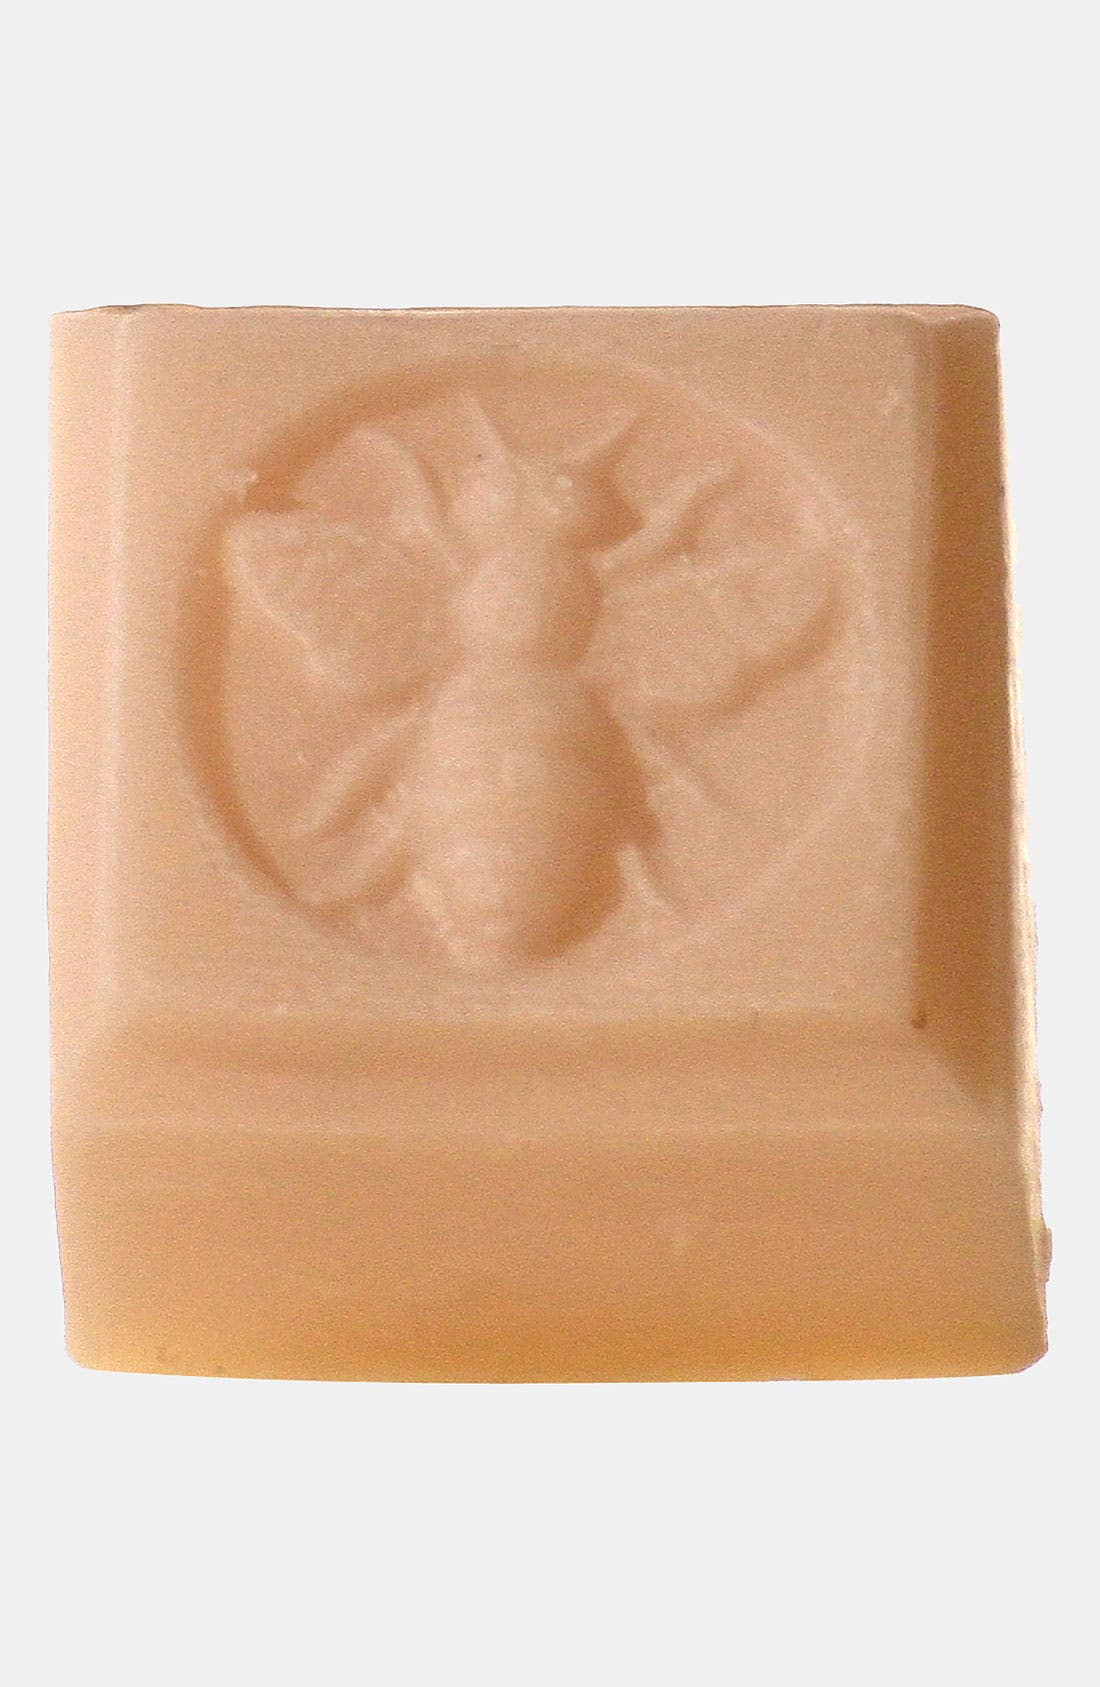 Honey Almond Goat Milk Soap,                             Alternate thumbnail 2, color,                             900